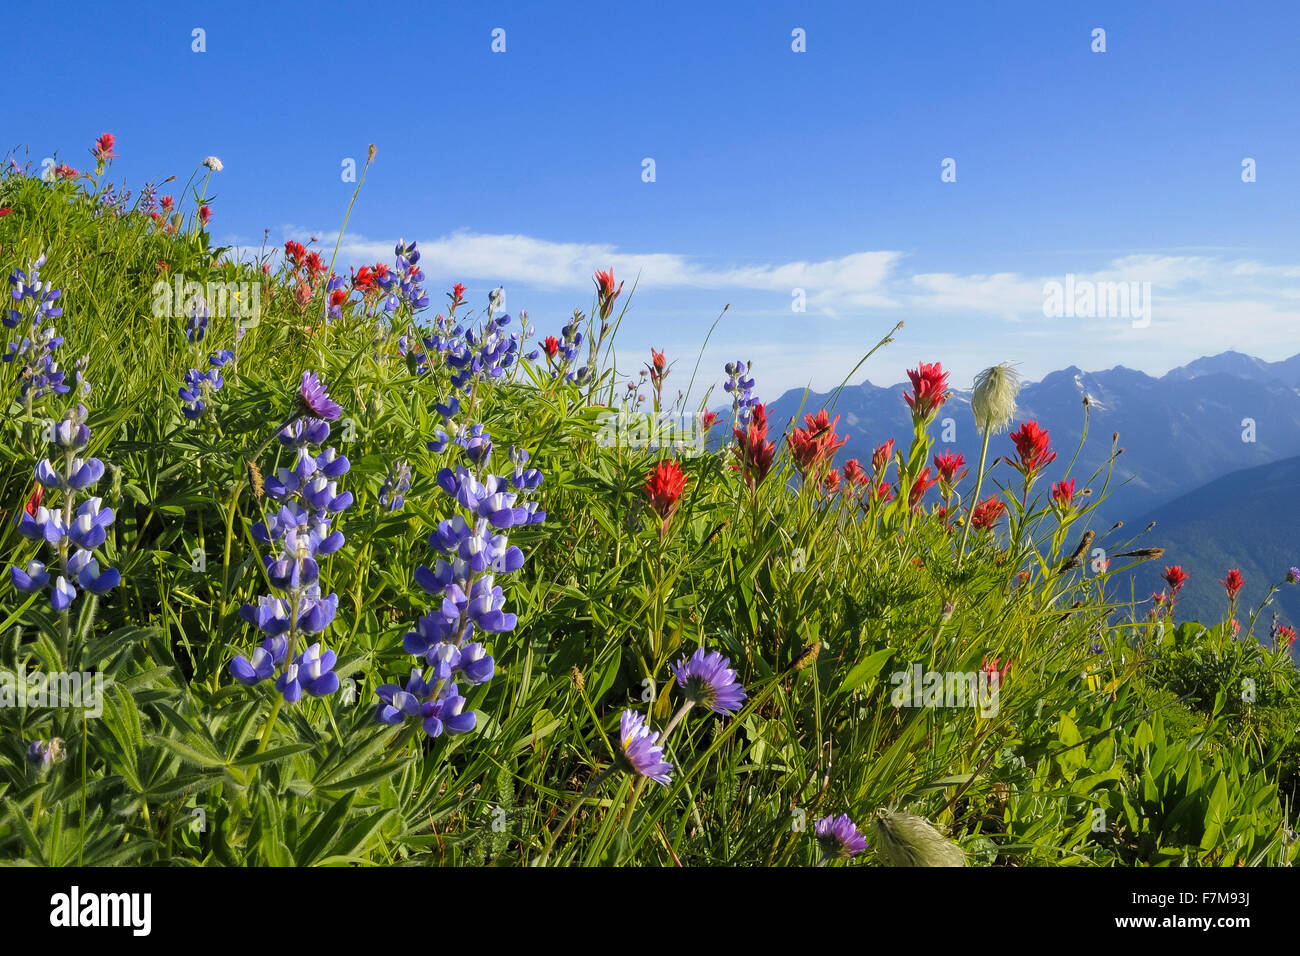 Idaho Peak, Selkirk Mountains, British Columbia, Canada - Stock Image